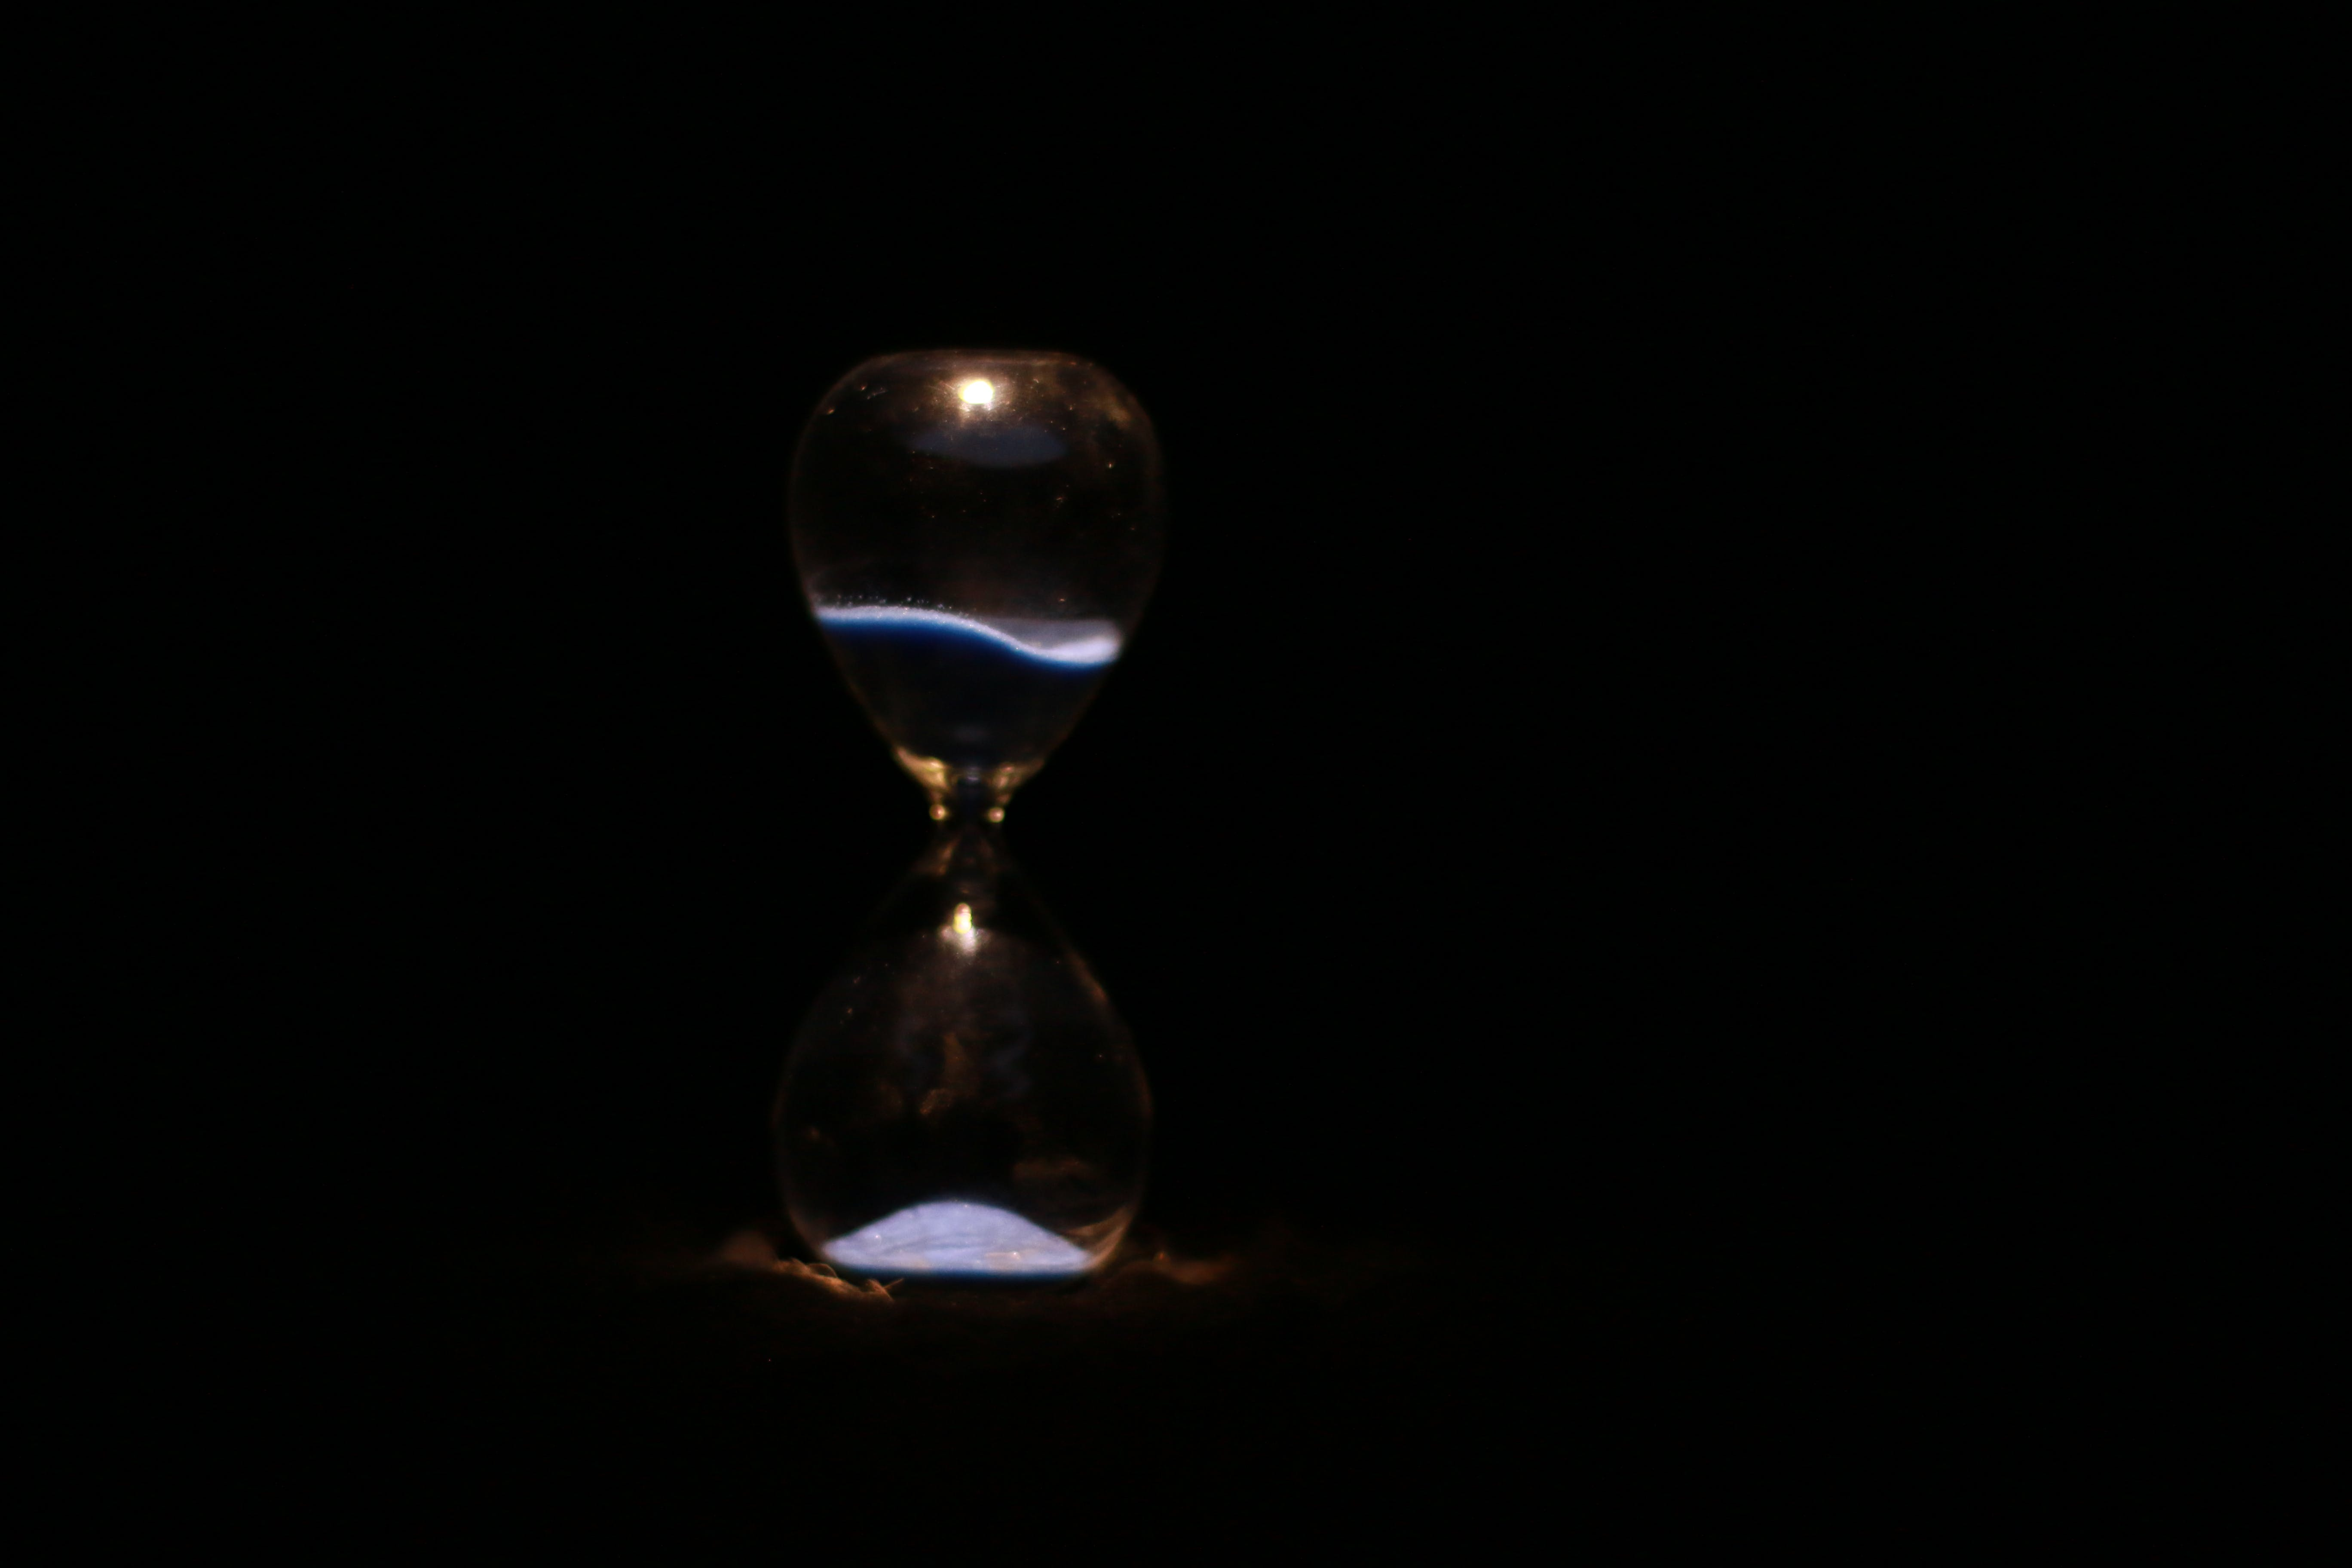 Free stock photo of black, blue, glass, hourglass